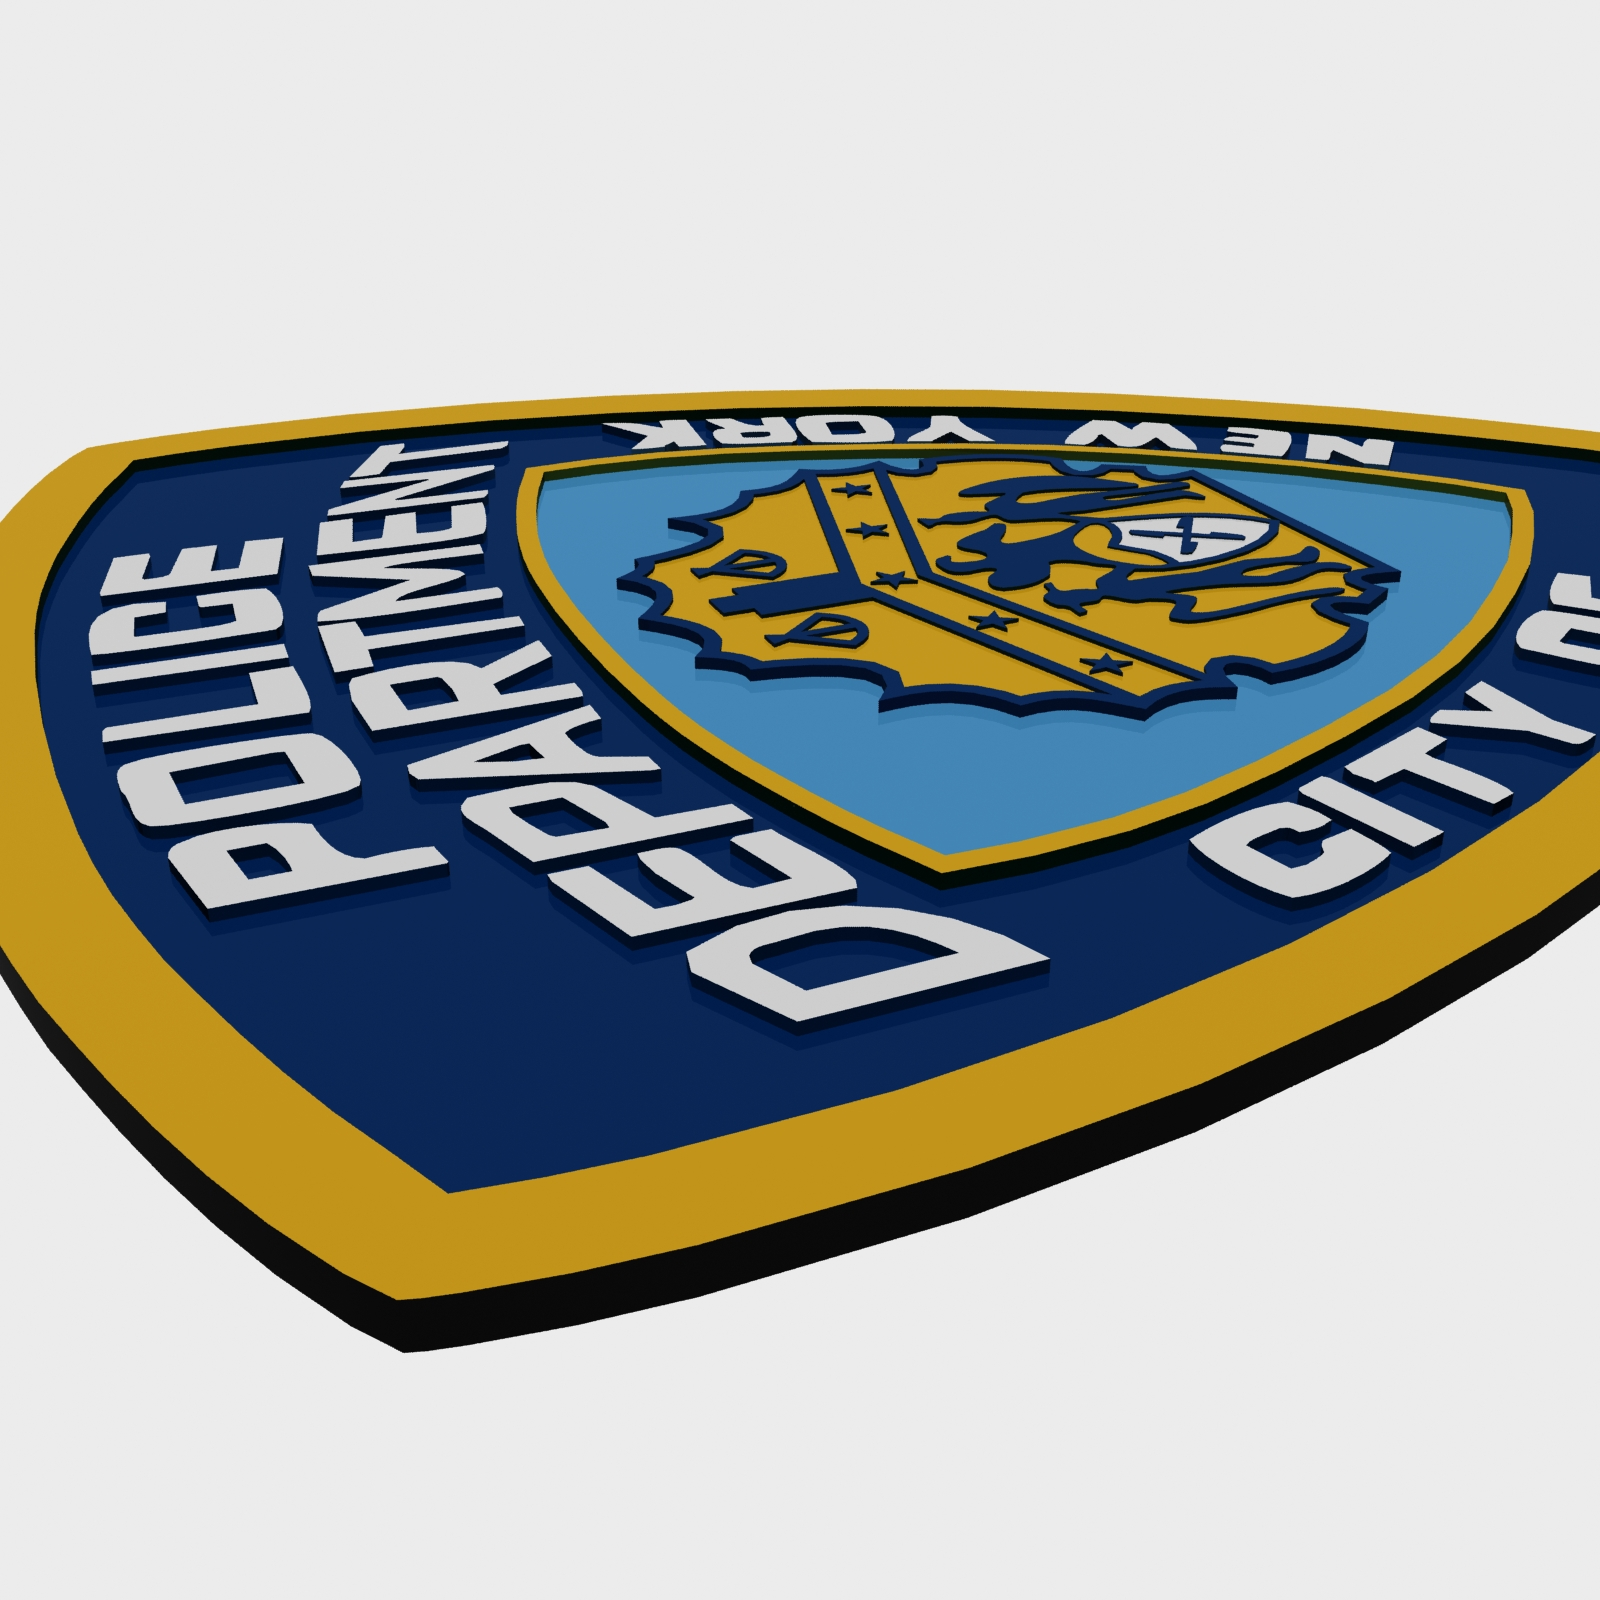 nypd police department logo by polygon3d 3docean rh 3docean net nypd logo wallpaper nypd logo history